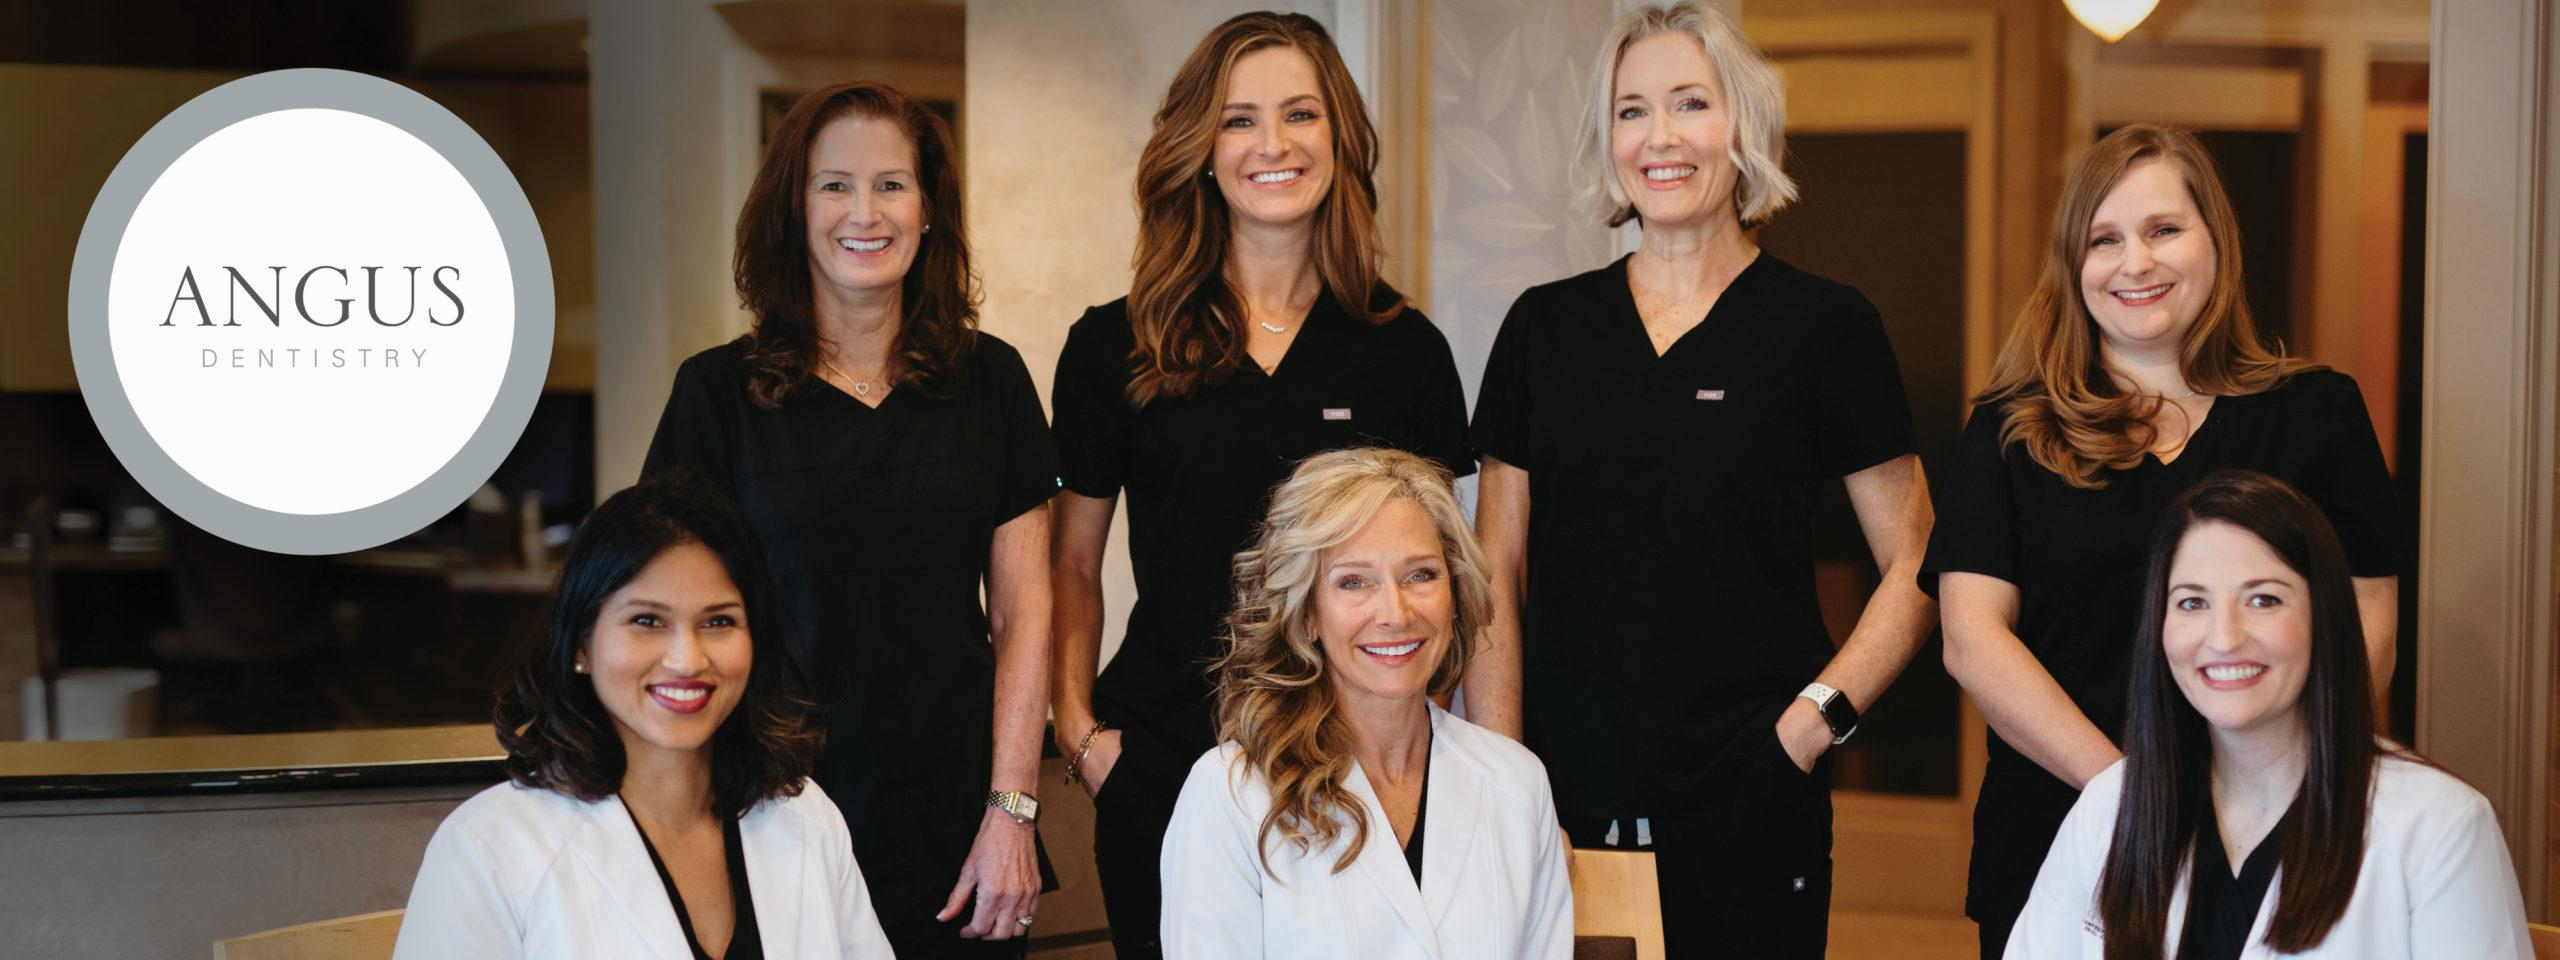 Seven Women Inside Dentist Office. 4 dressed in black scrubs who are standing, and three doctors in lab coats are sitting.